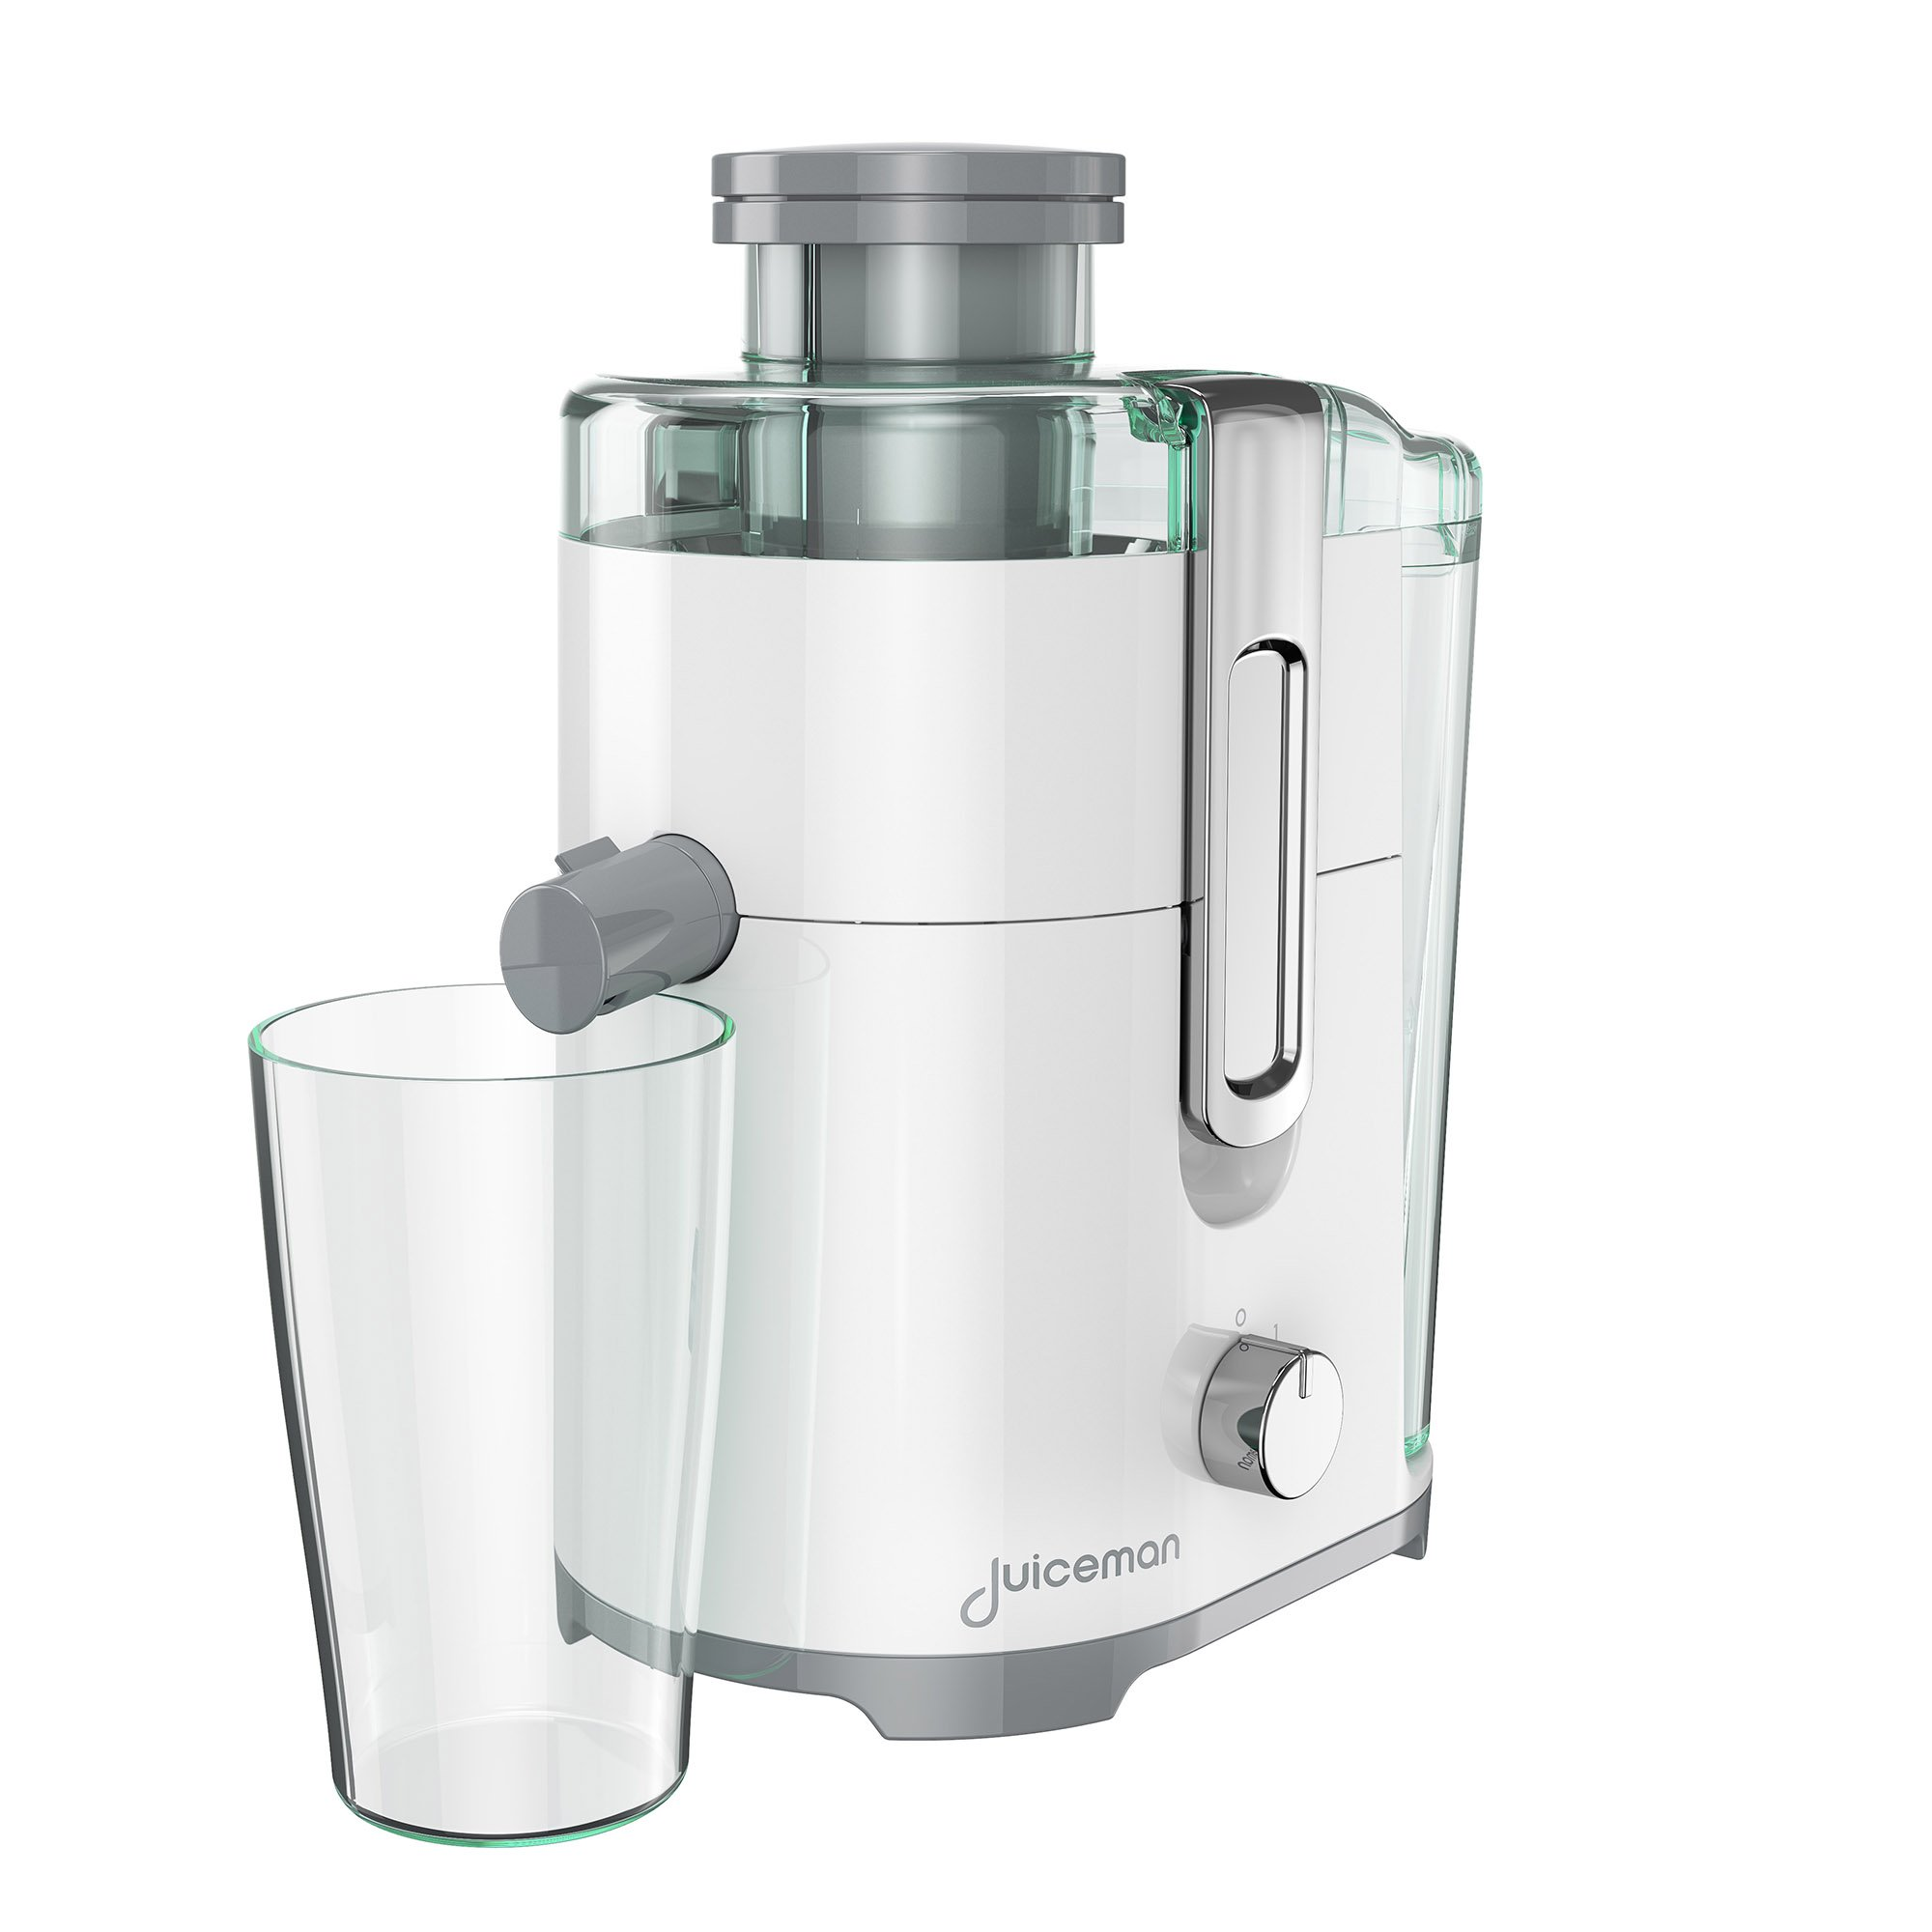 Juiceman JM250 Compact 2 Speed Juicer with 48oz Removable Pulp Container & Bonus 16oz. Juicing Cup